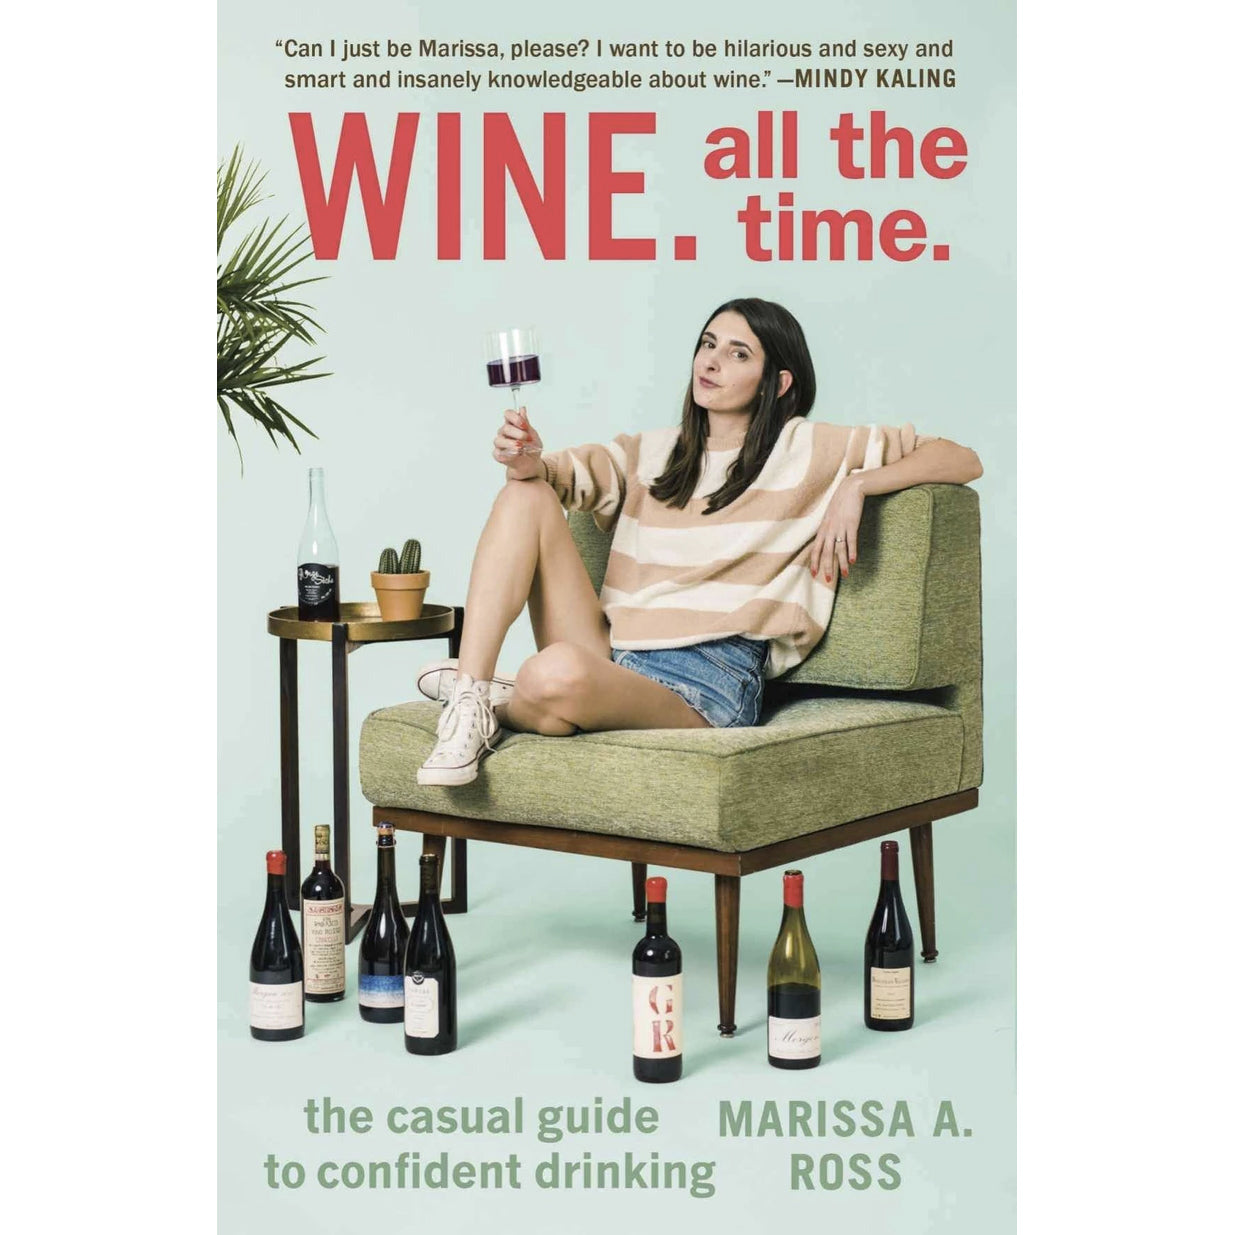 Wine. All the Time. — The Casual Guide to Confident Drinking